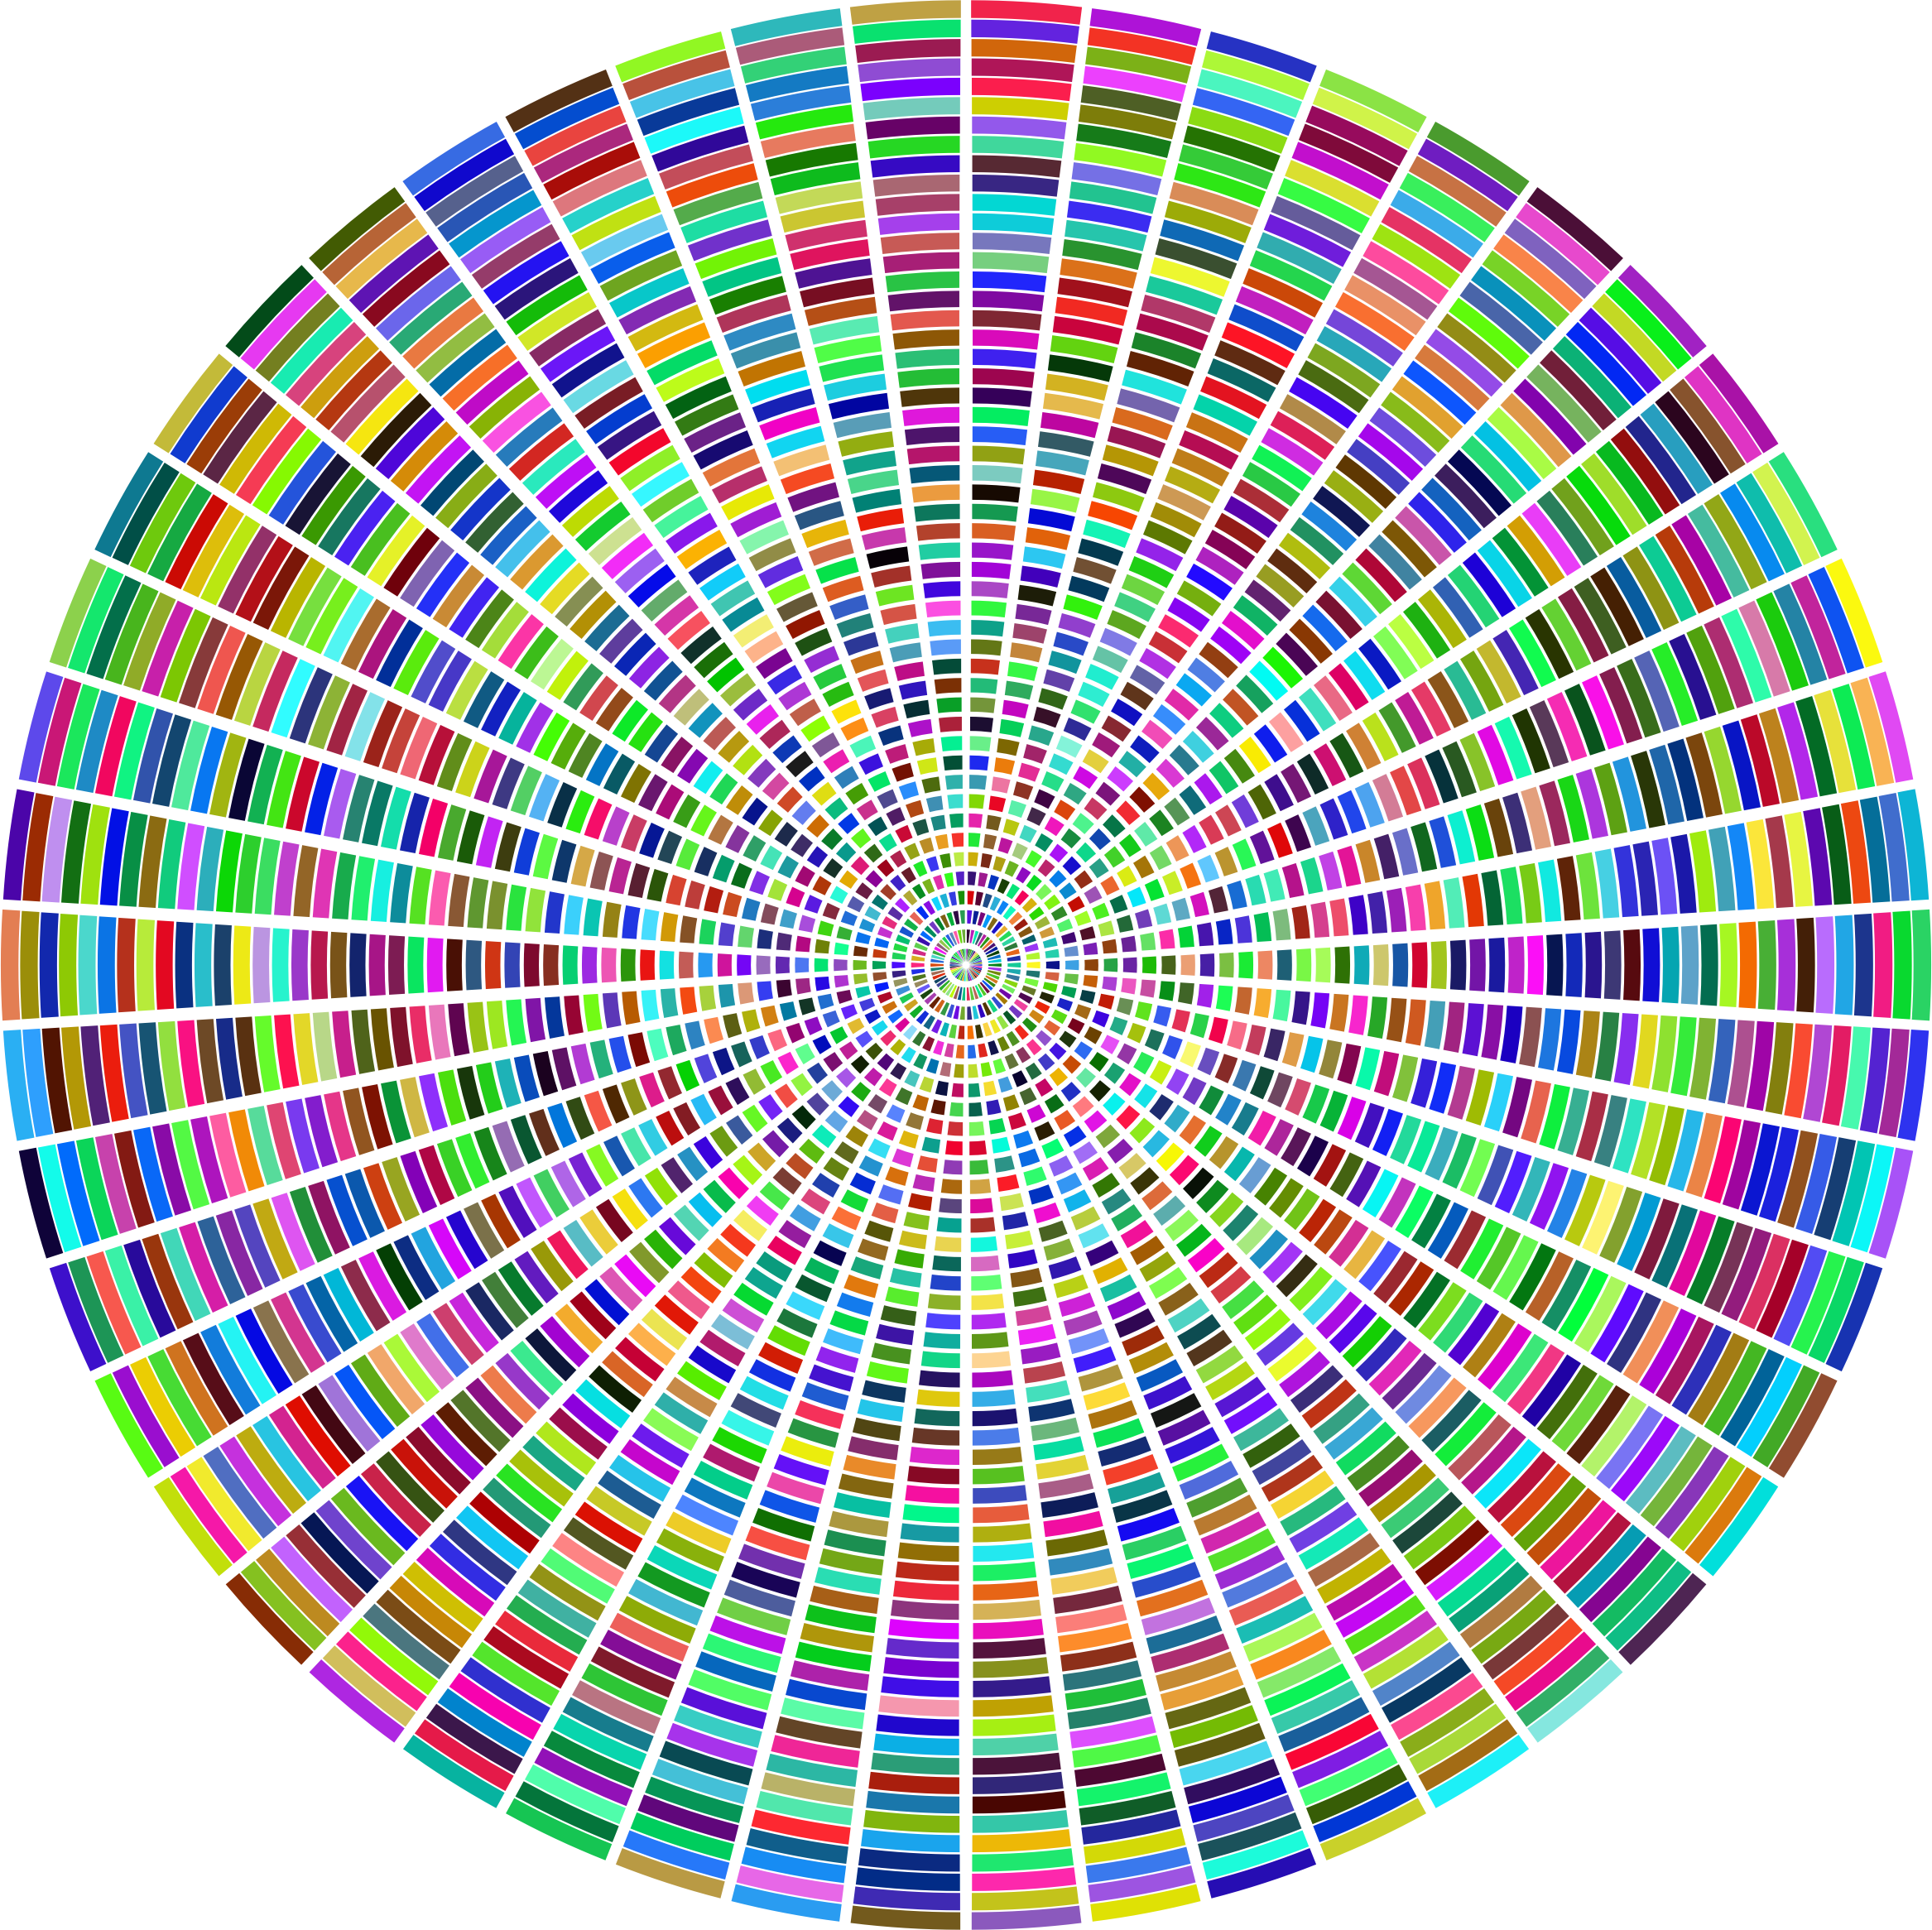 Colorful Concentric Rectangles by GDJ